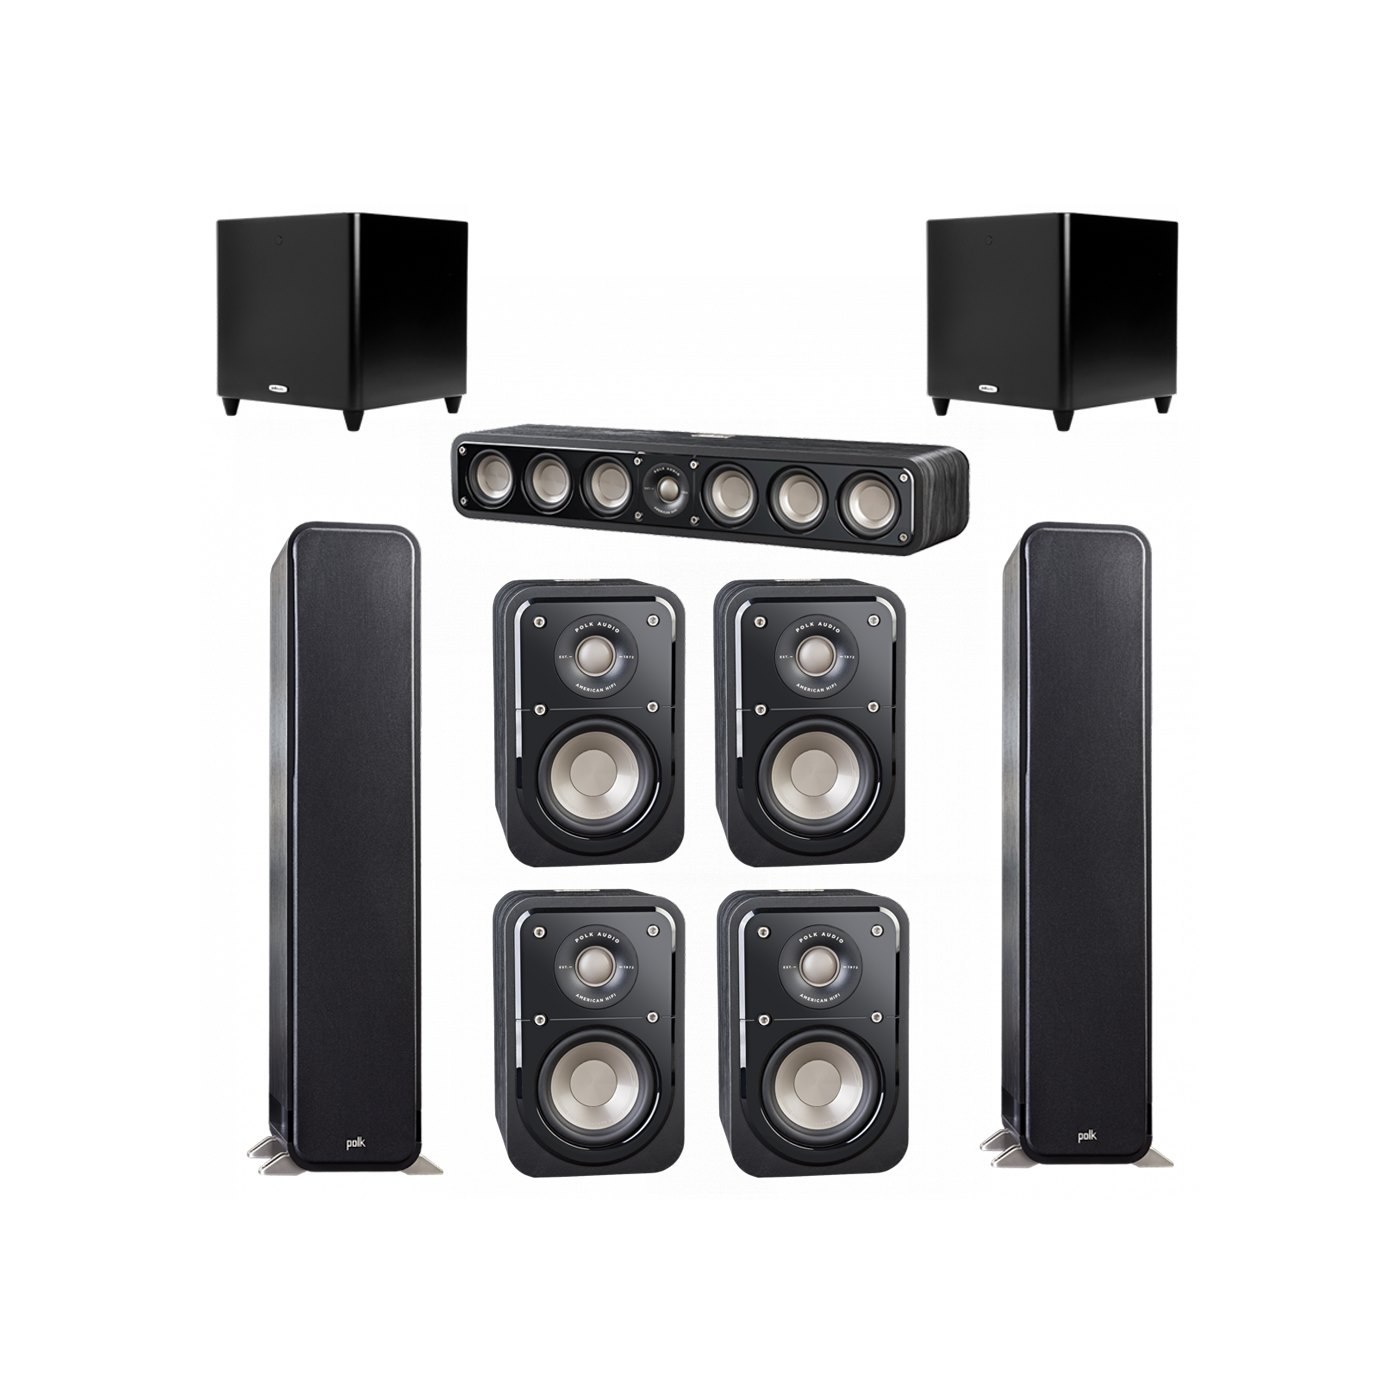 Polk Audio Signature 7.2 System with 2 S55 Tower Speaker, 1 Polk S35 Center Speaker, 4 Polk S10 Bookshelf Speaker, 2 Polk DSW PRO 660 wi Subwoofer